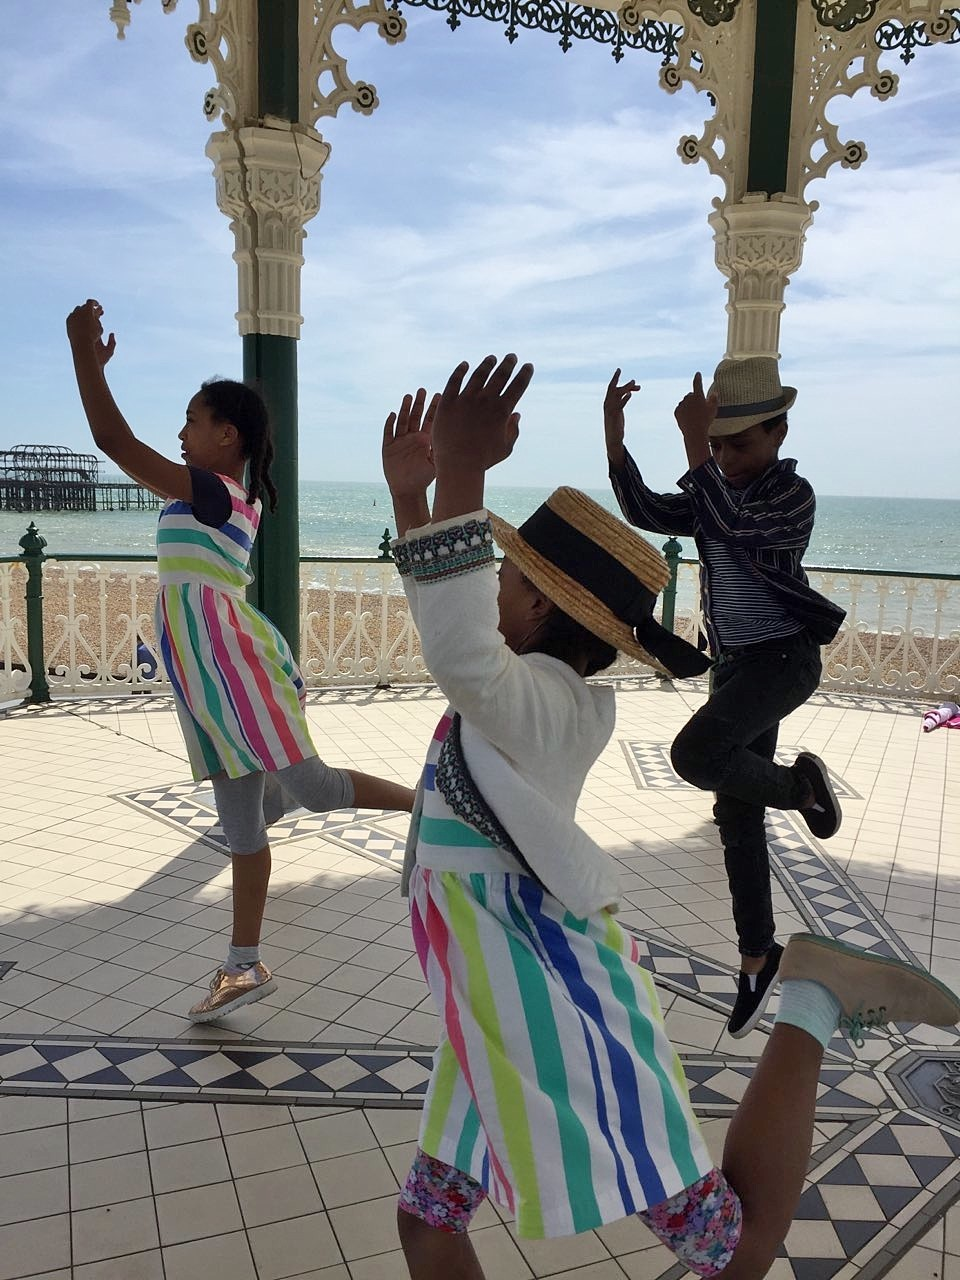 Dance trio in bandstand.